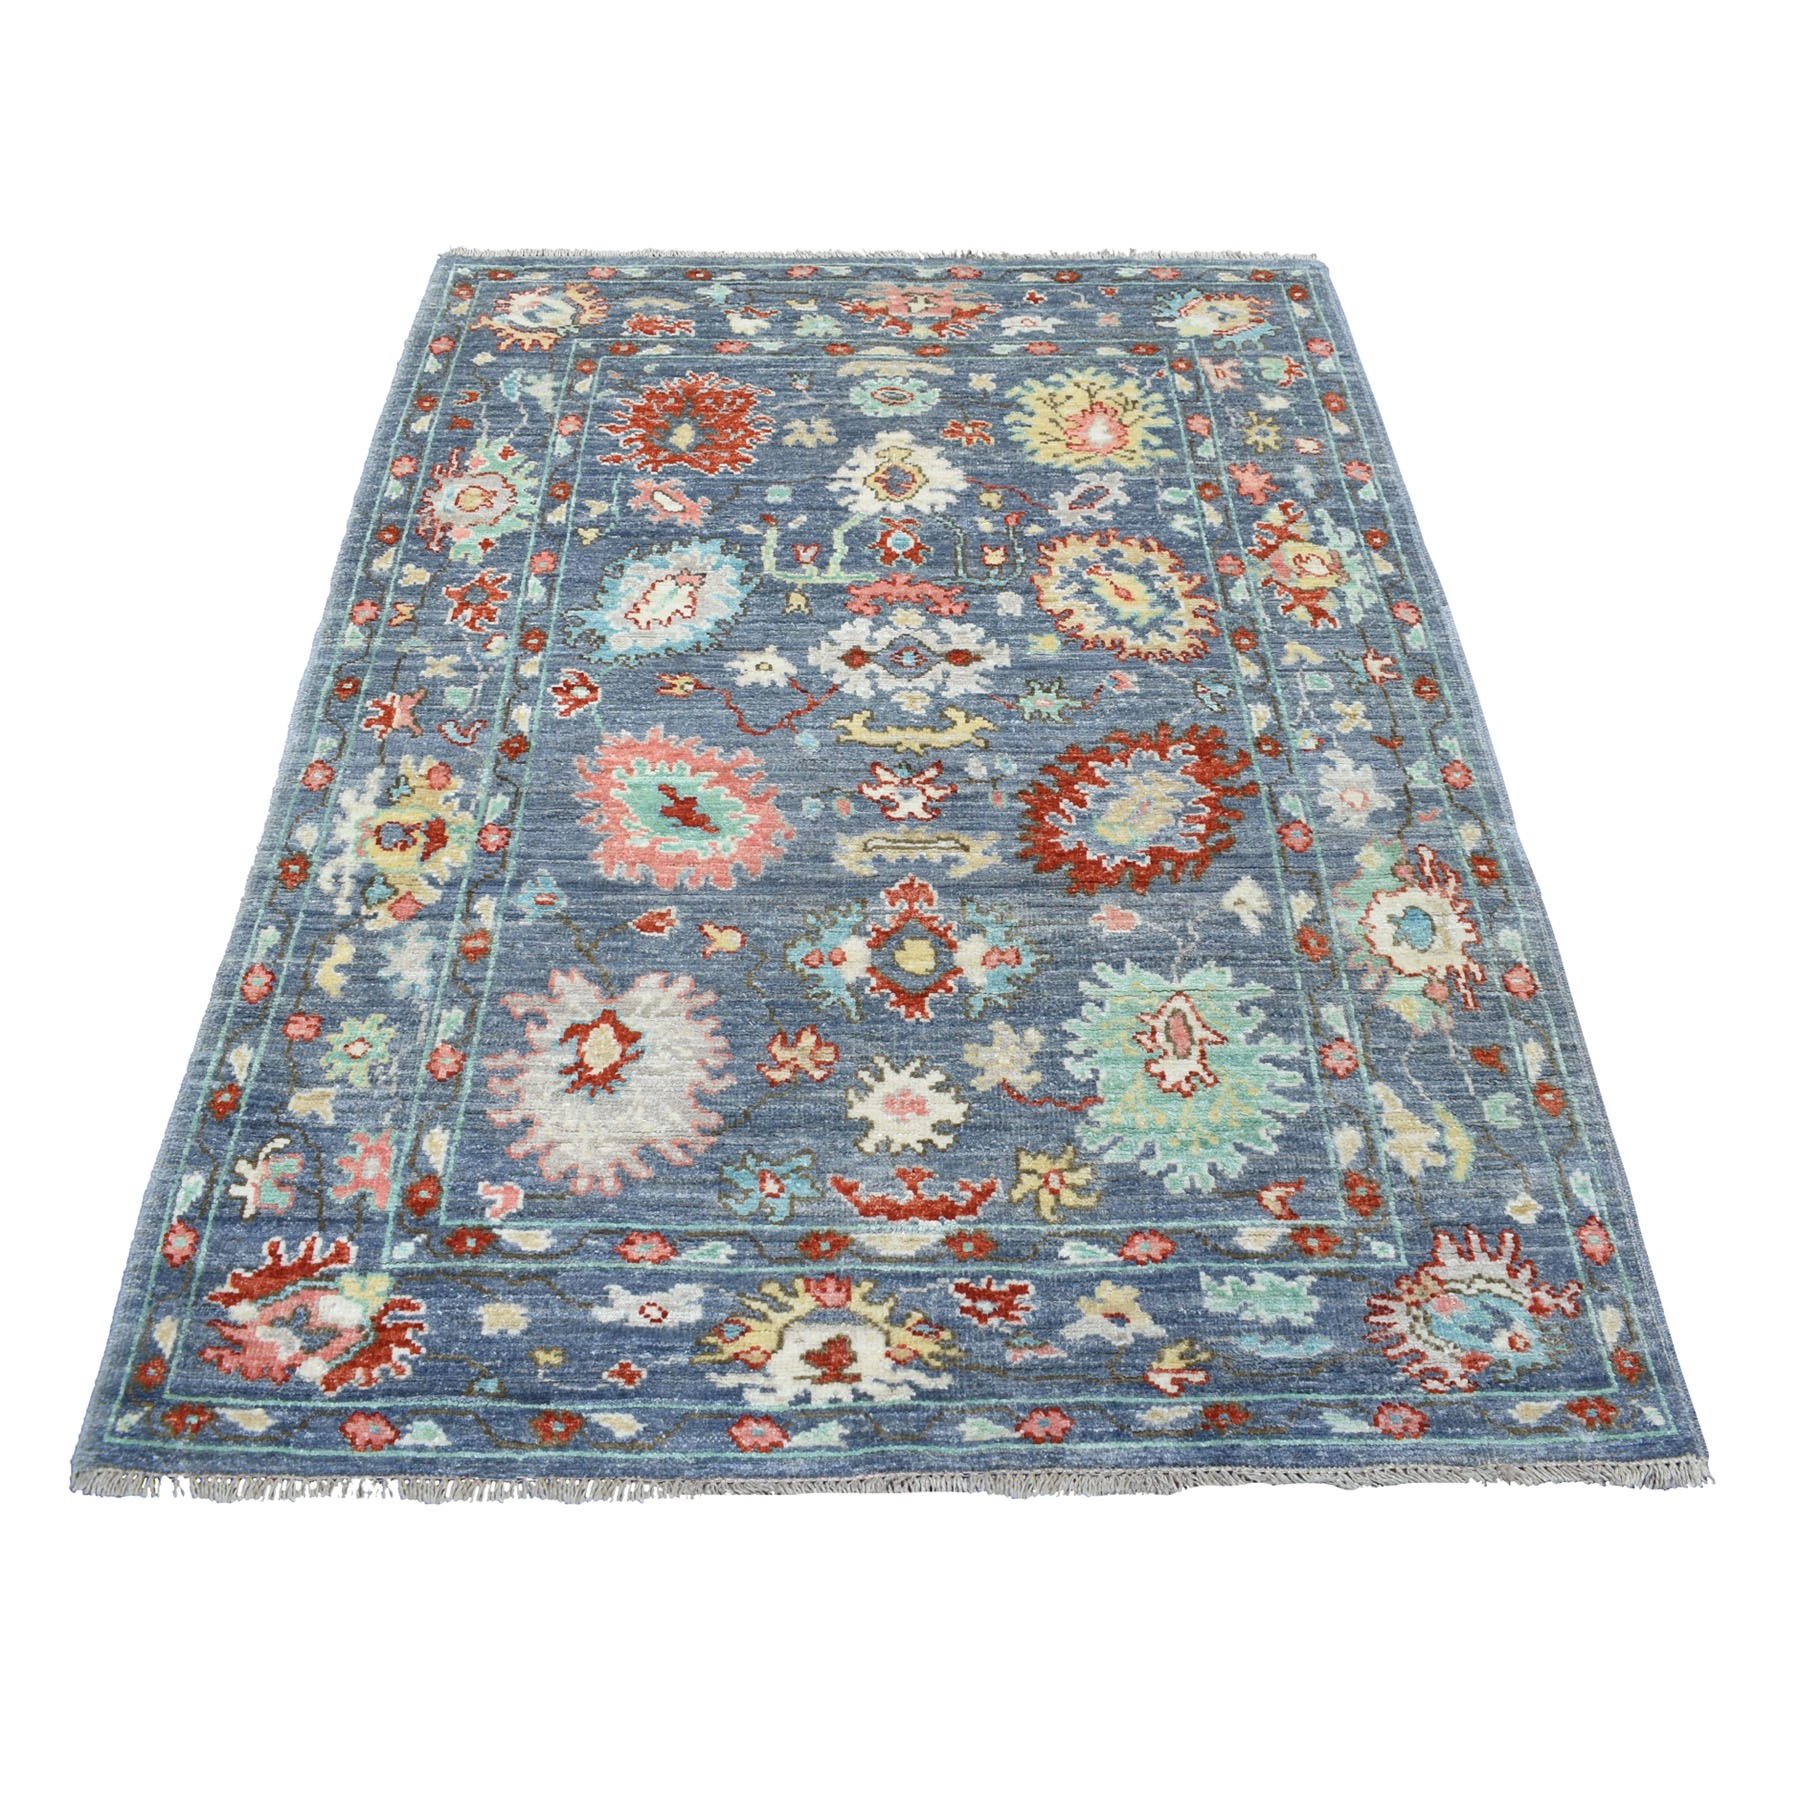 """4'x5'10"""" Denim Blue Angora Oushak In A Colorful Palette Pure Wool Hand Knotted Oriental Rug"""